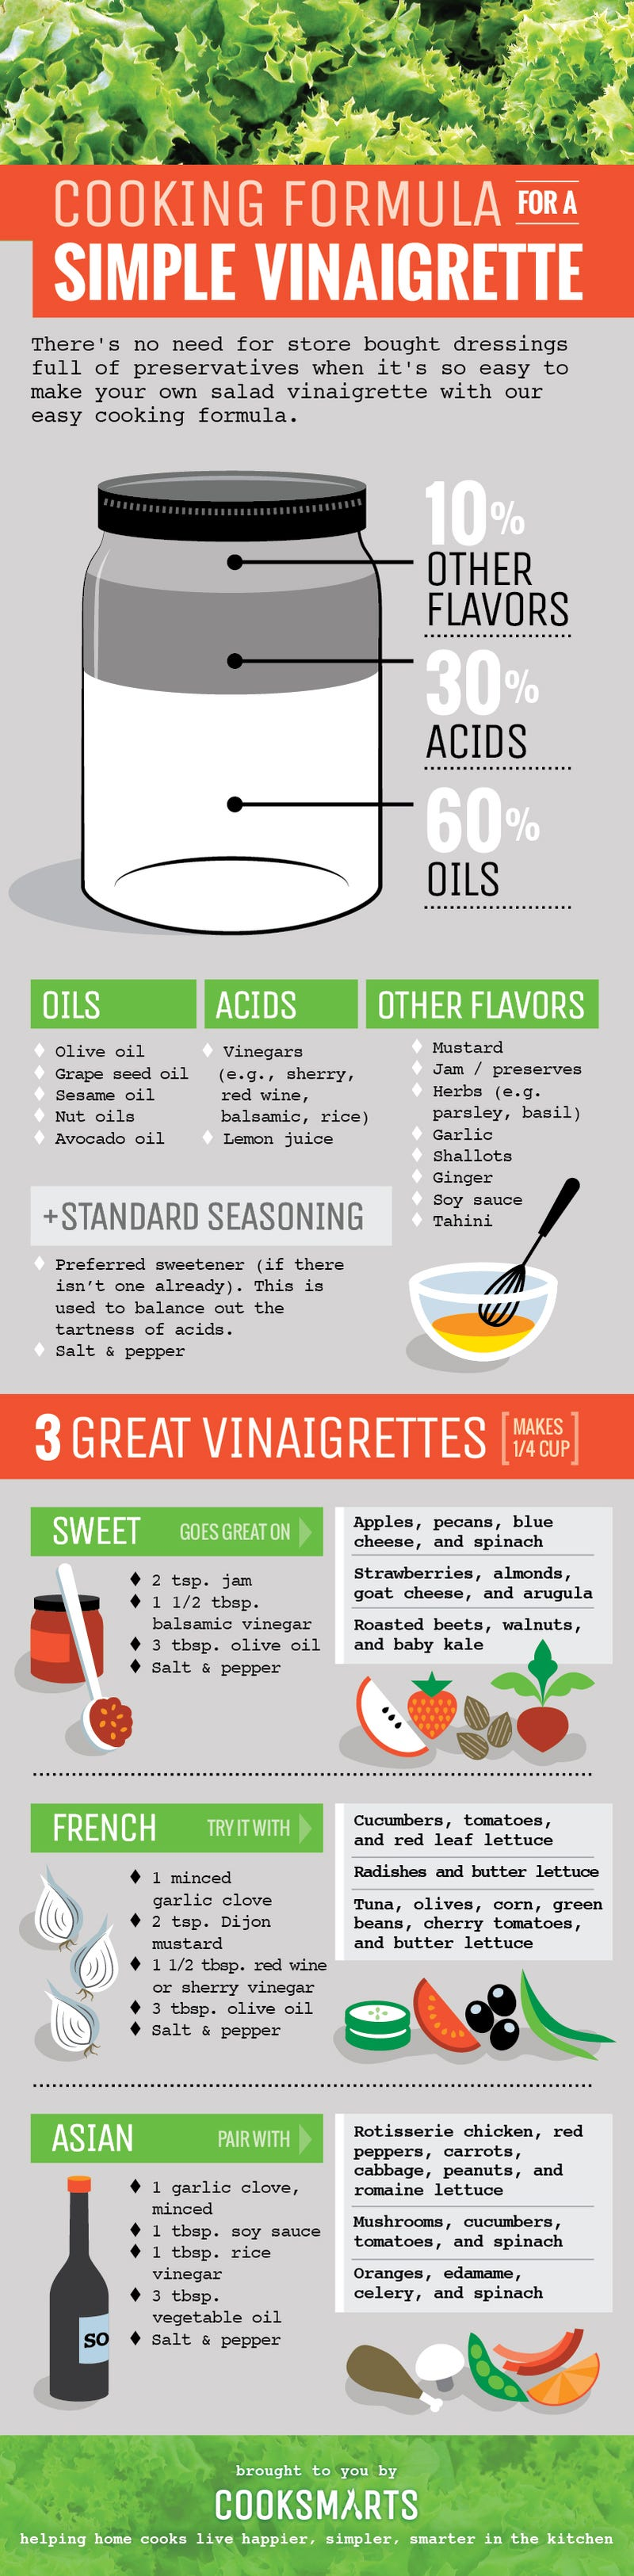 Make Your Own Awesome Salad Dressing with This Simple Cooking Formula